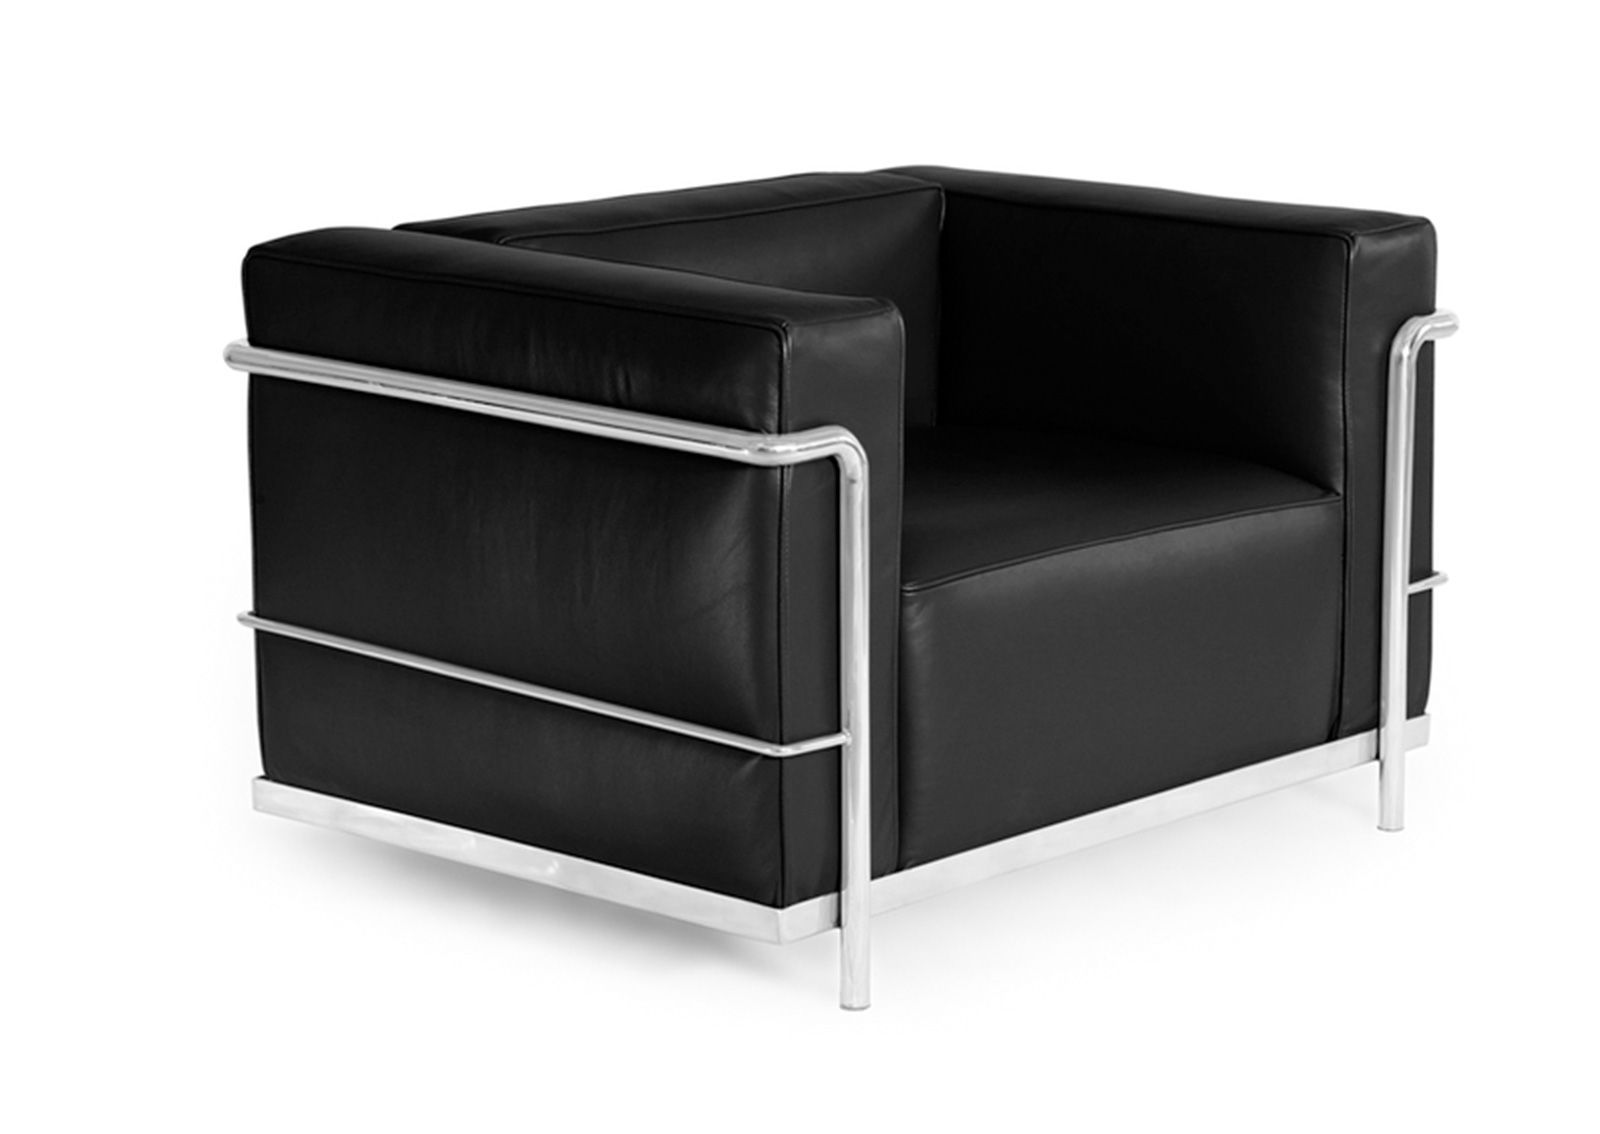 Le Corbusier Design Mobili.Lc3 Chair By Le Corbusier